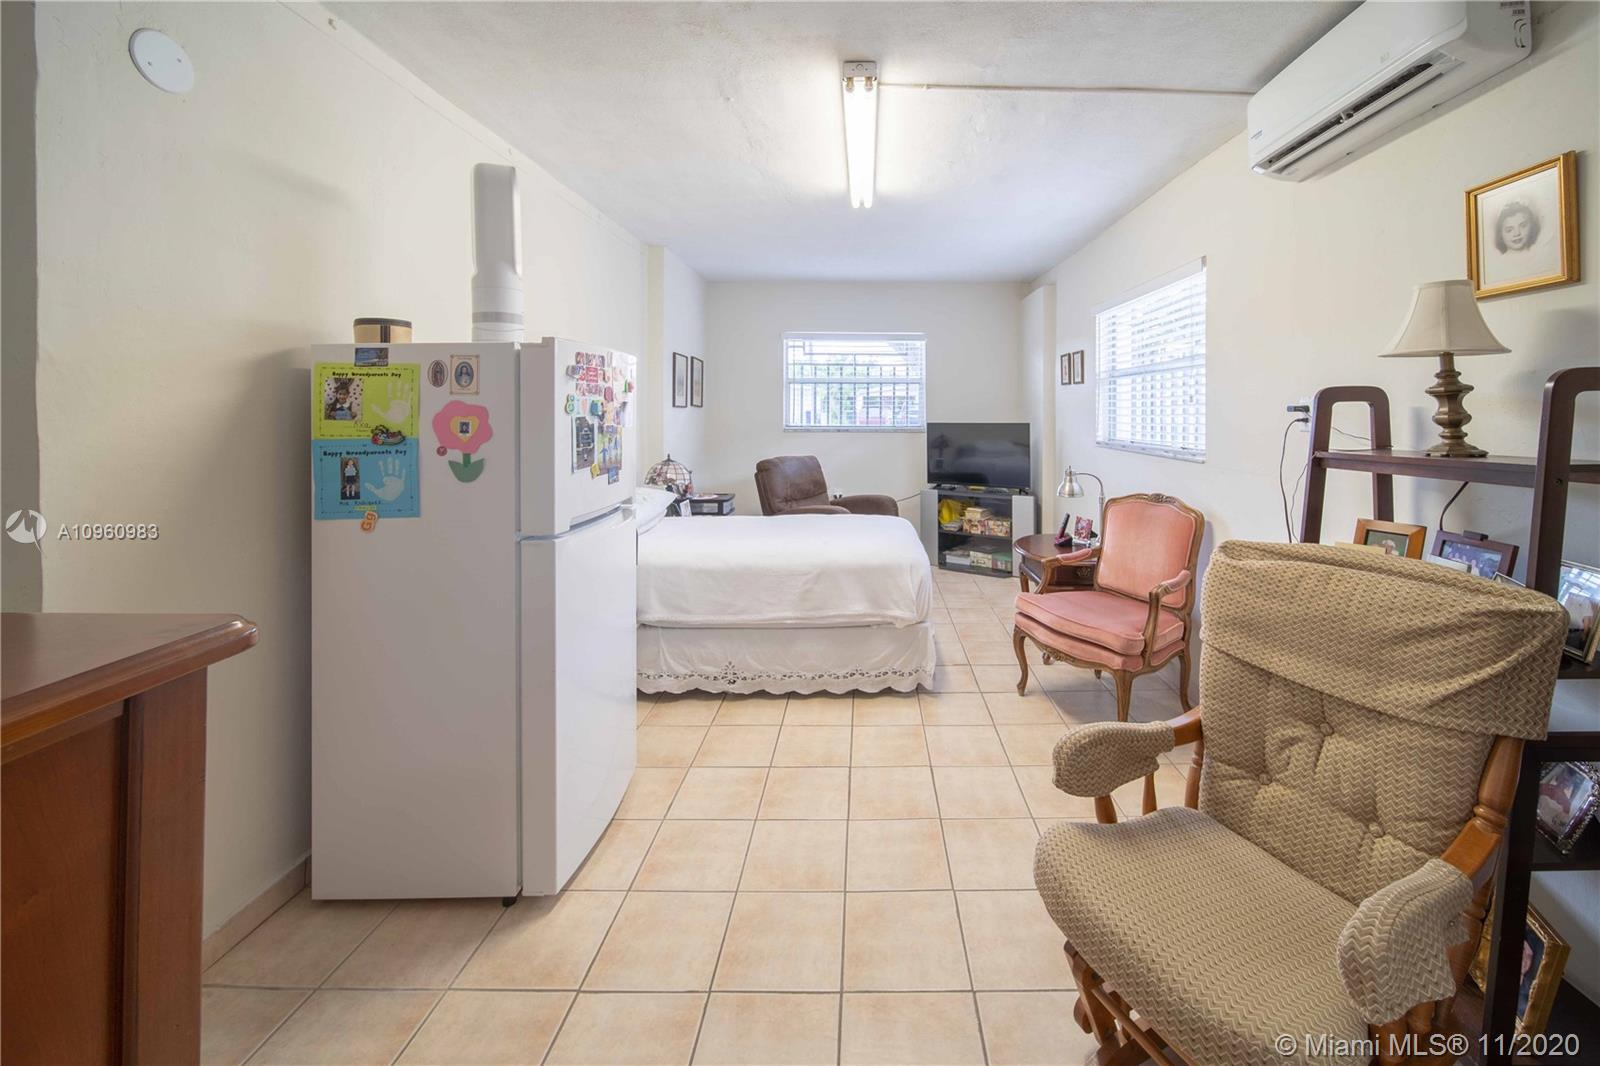 3675 SW 4th St, Miami, Florida 33135, ,1 BathroomBathrooms,Residential Lease,For Rent,3675 SW 4th St,A10960983